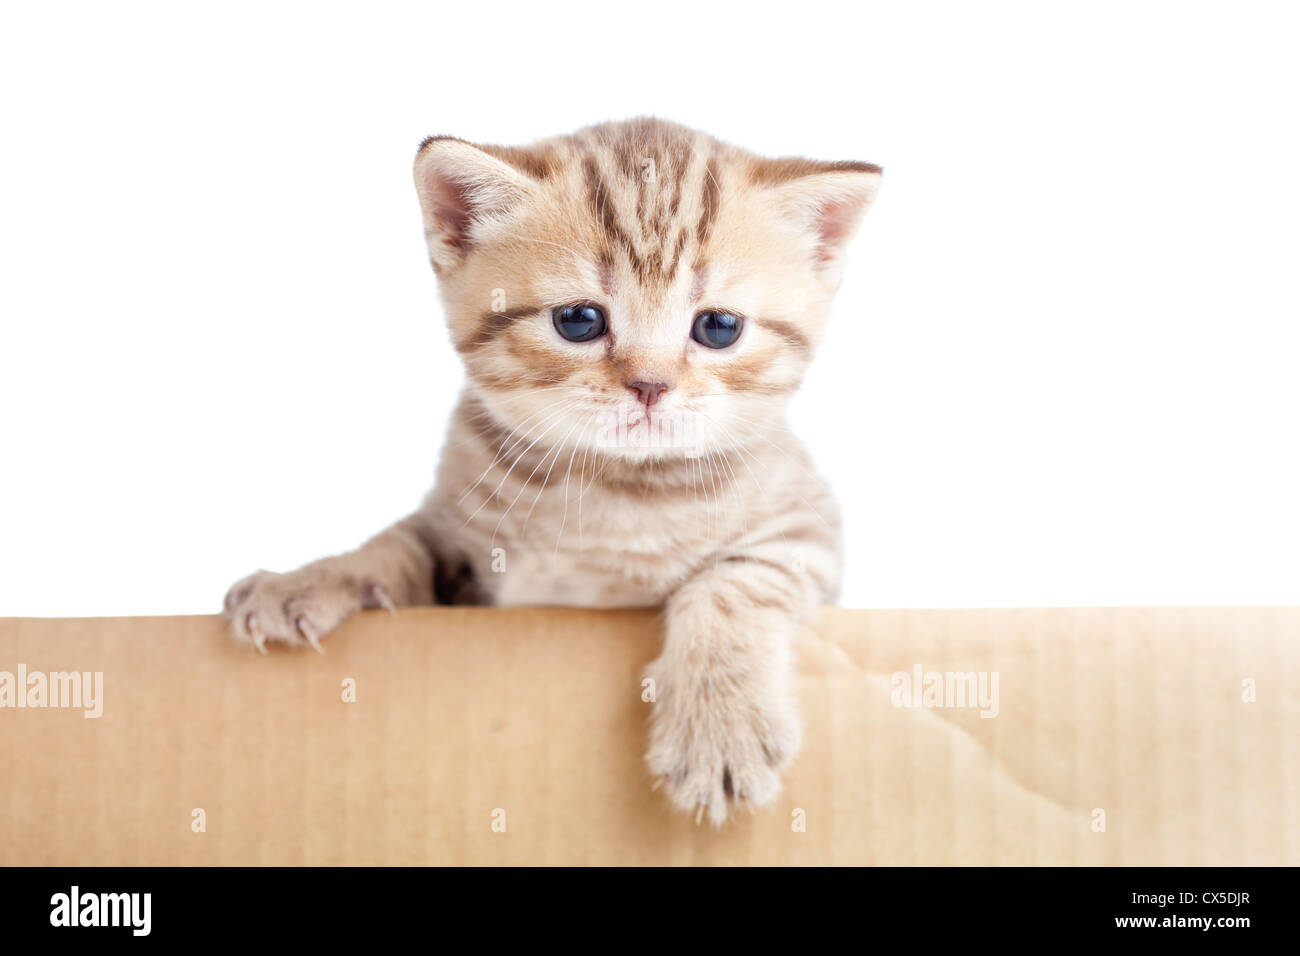 british baby cat in cardboard box isolated - Stock Image